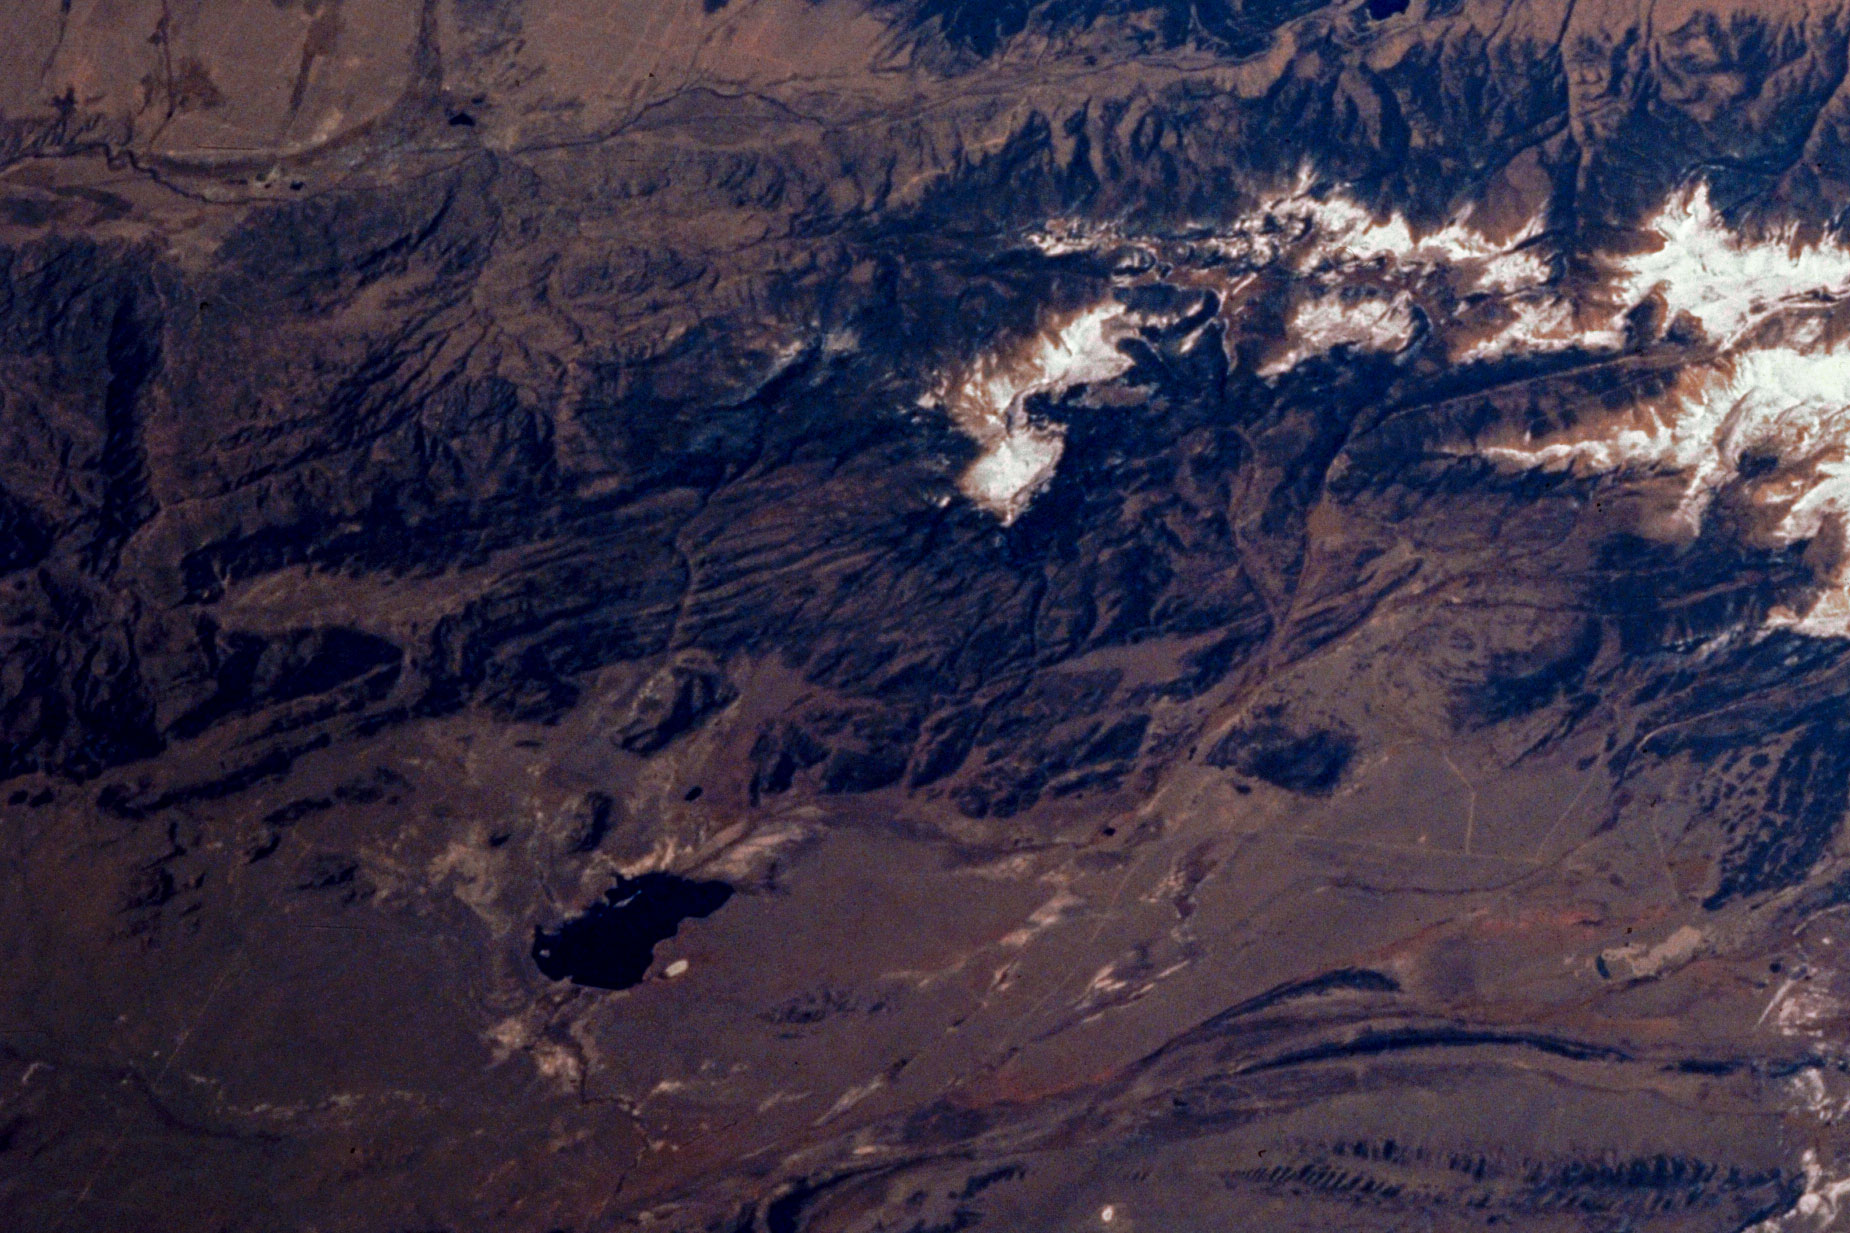 Antero Reservoir as seen from space and photographed during STS-58 in October of 1993. The reservoir appears as a dark blotch near the lower left of the photograph.